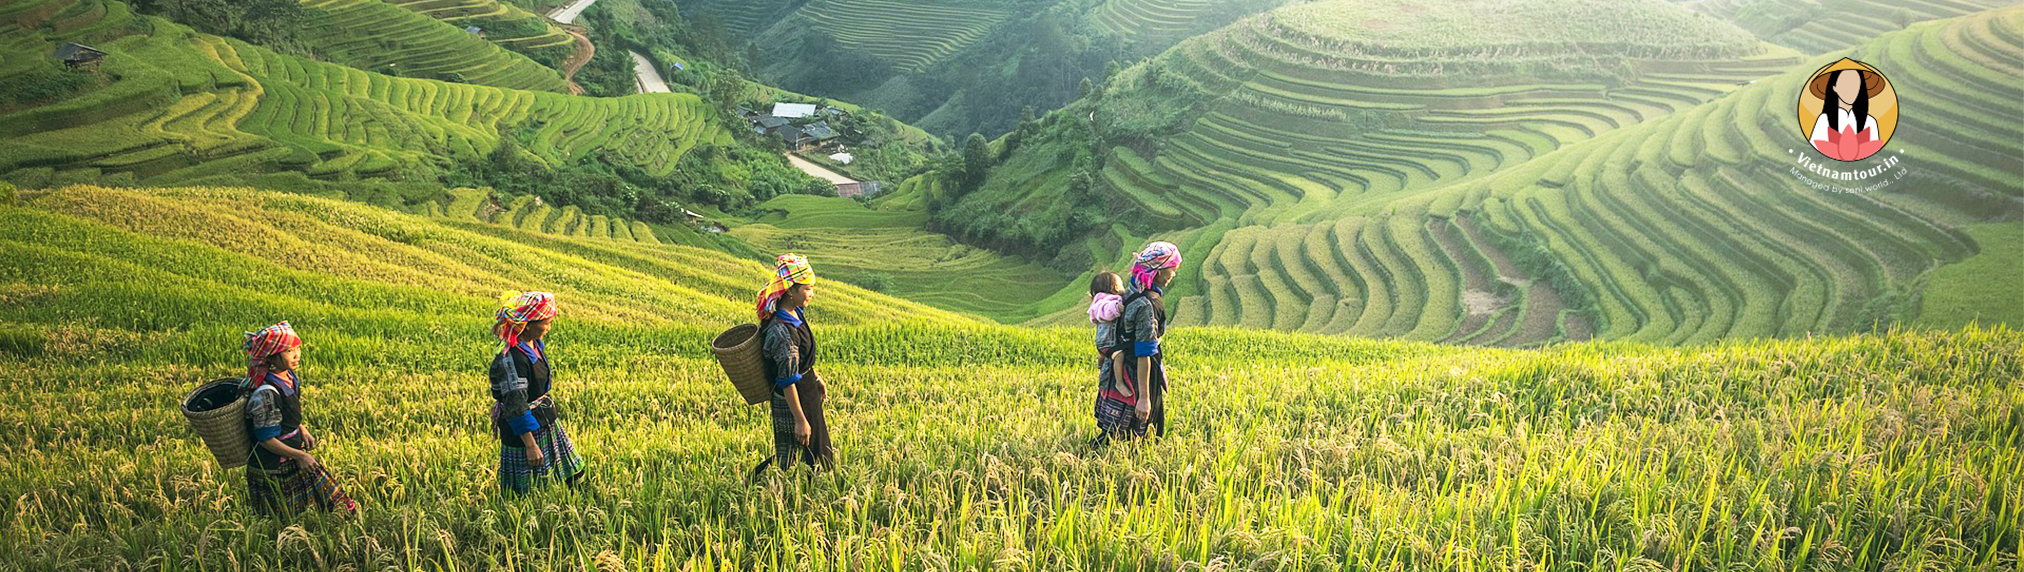 vietnam tour packages from hyderabad